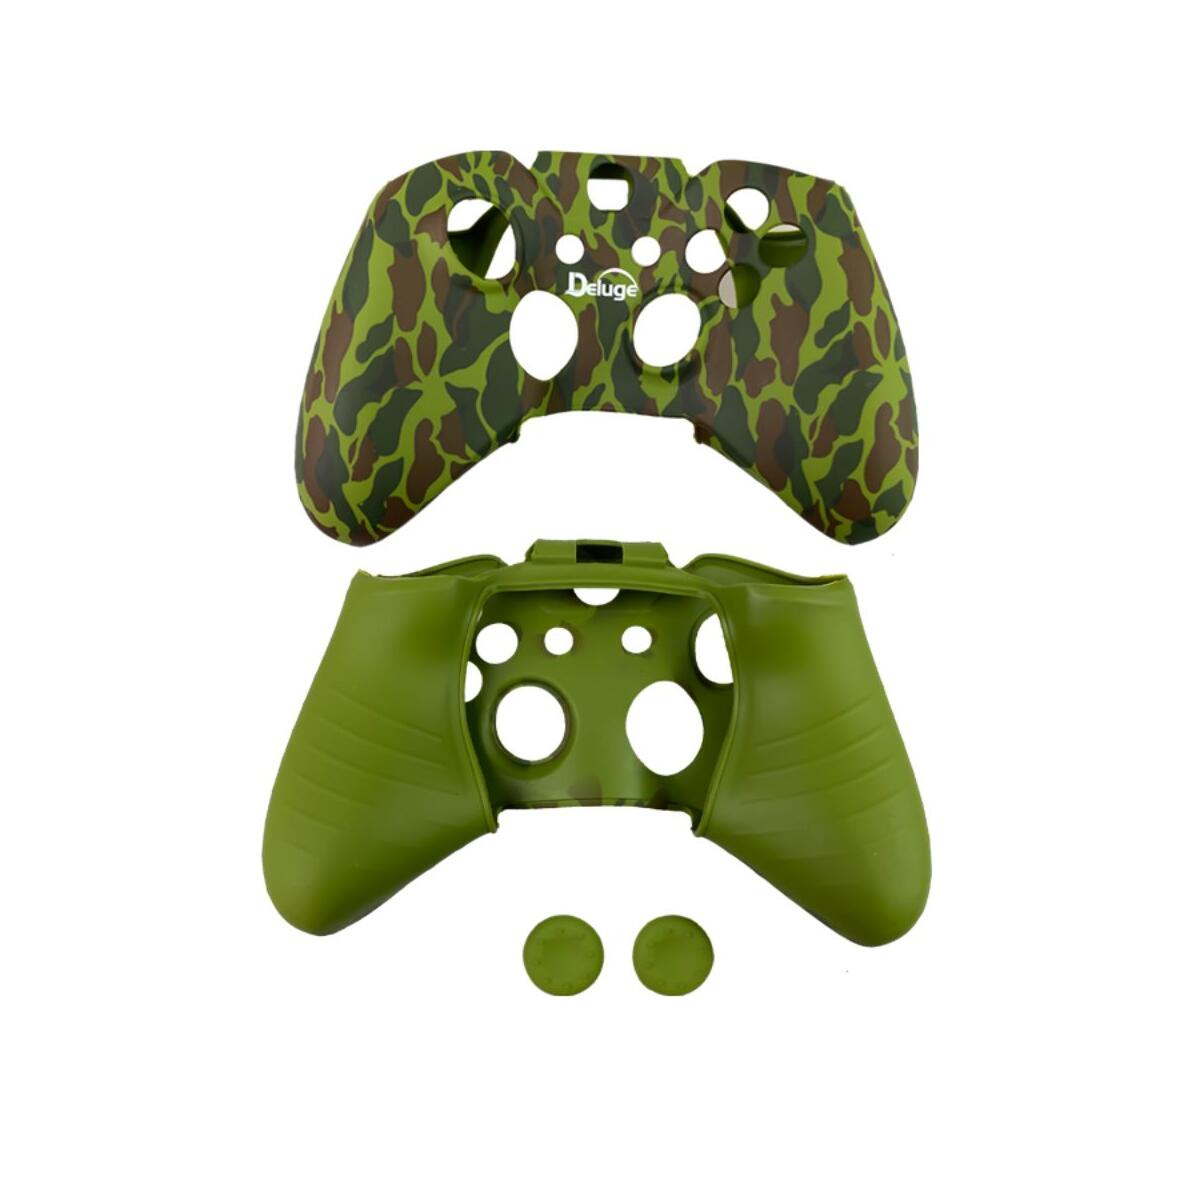 Silicone Rubber Skin Case Gel Cover+ thump Grip For Xbox One Wireless Controller